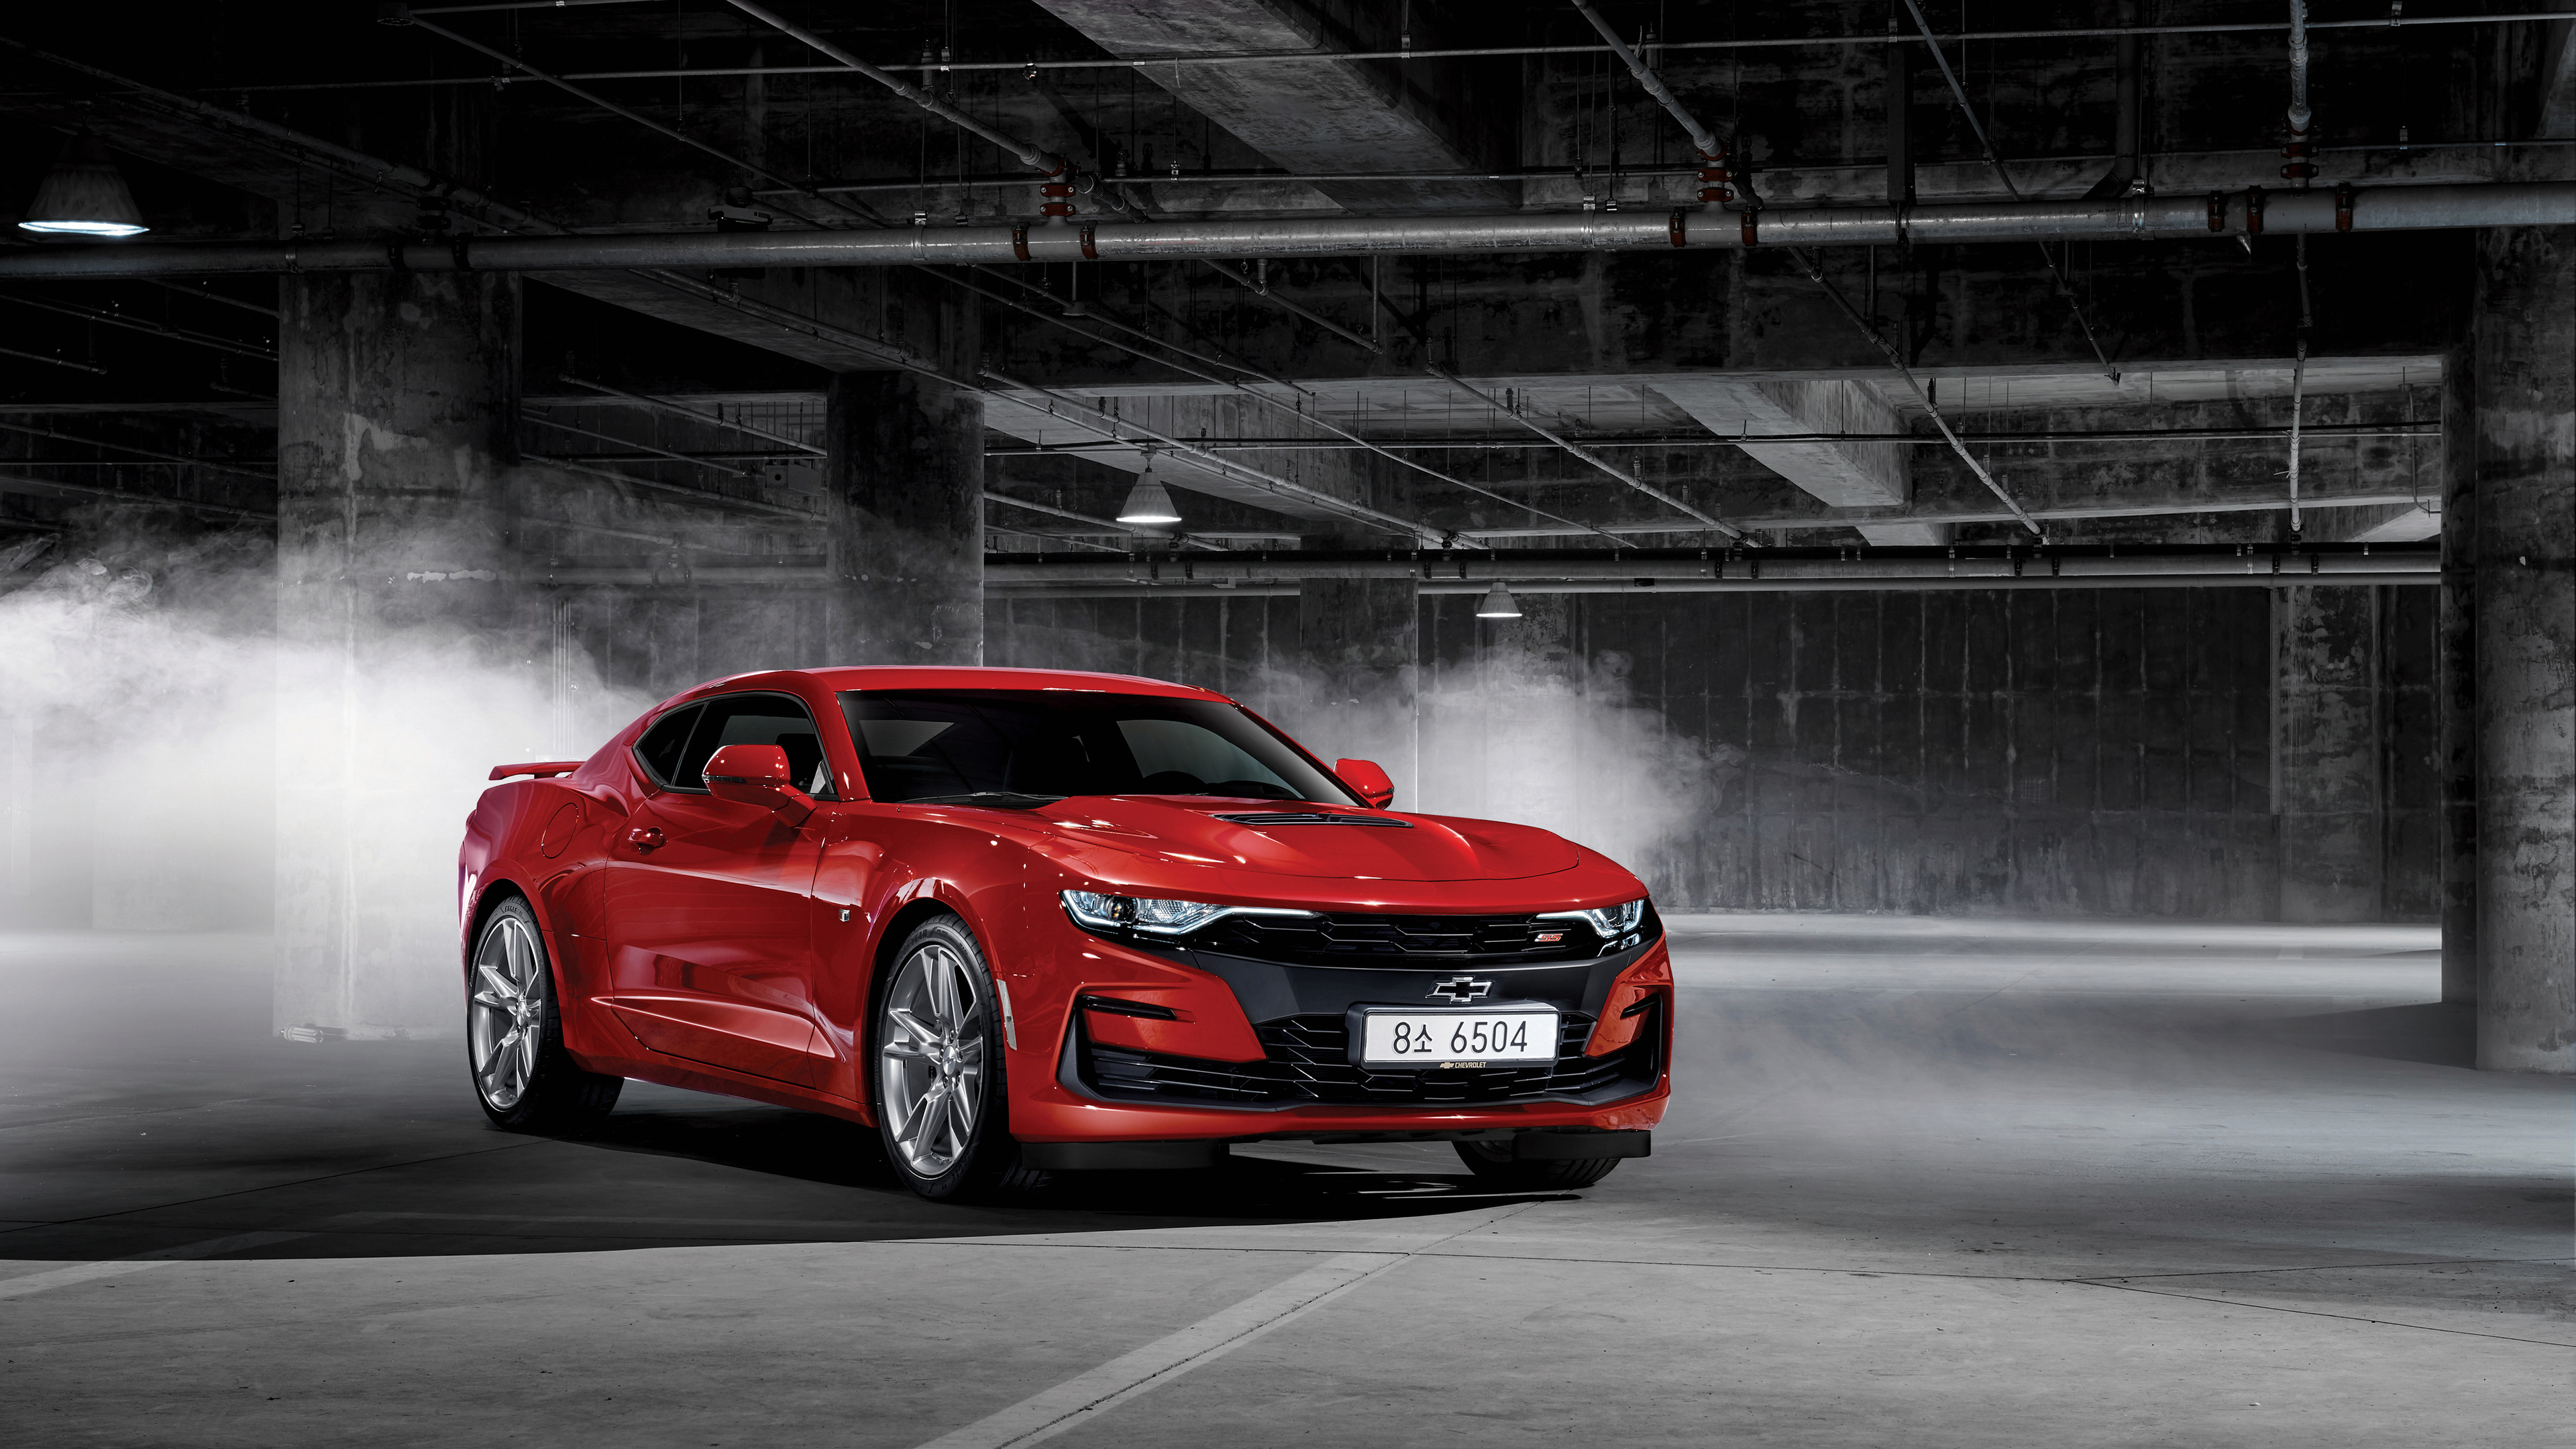 Chevrolet Camaro SS 2018 4k hd-wallpapers, chevrolet ...